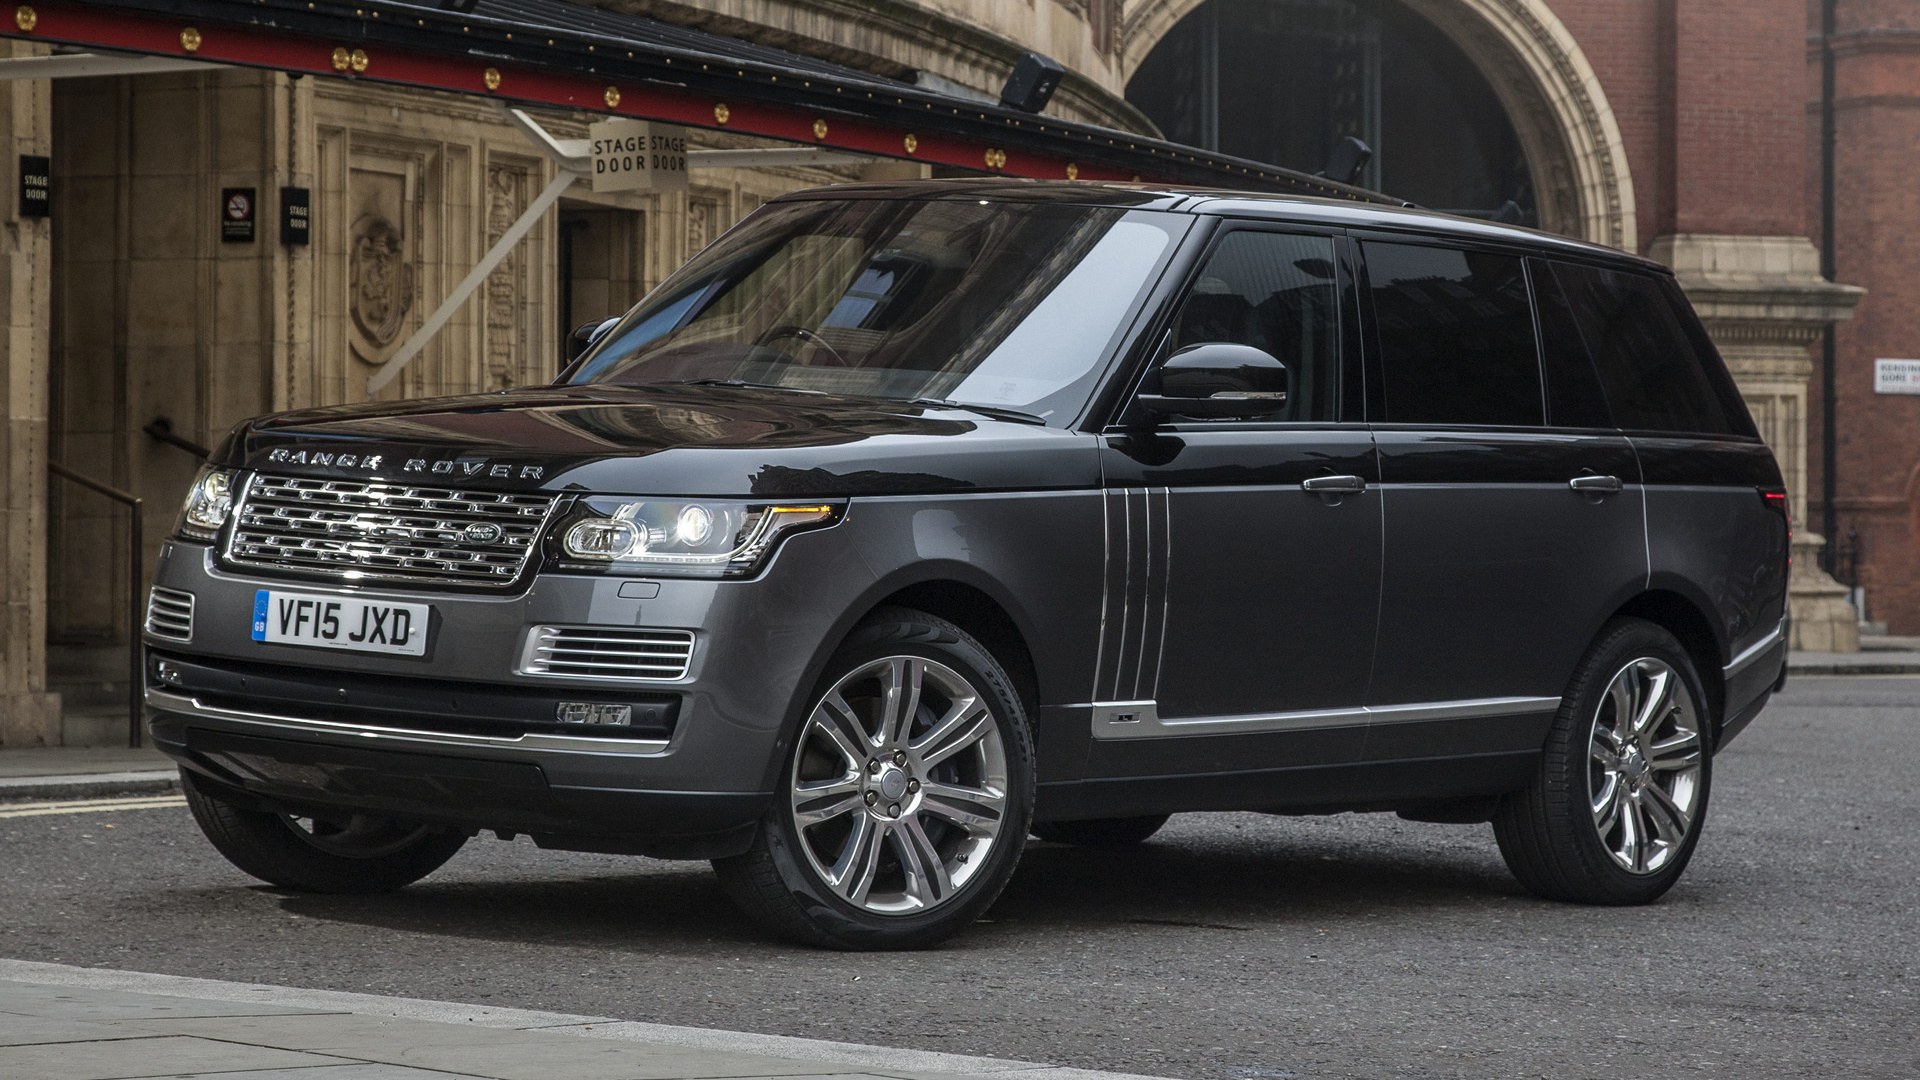 range rover svautobiography lwb 2015 uk wallpapers and hd images car pixel. Black Bedroom Furniture Sets. Home Design Ideas